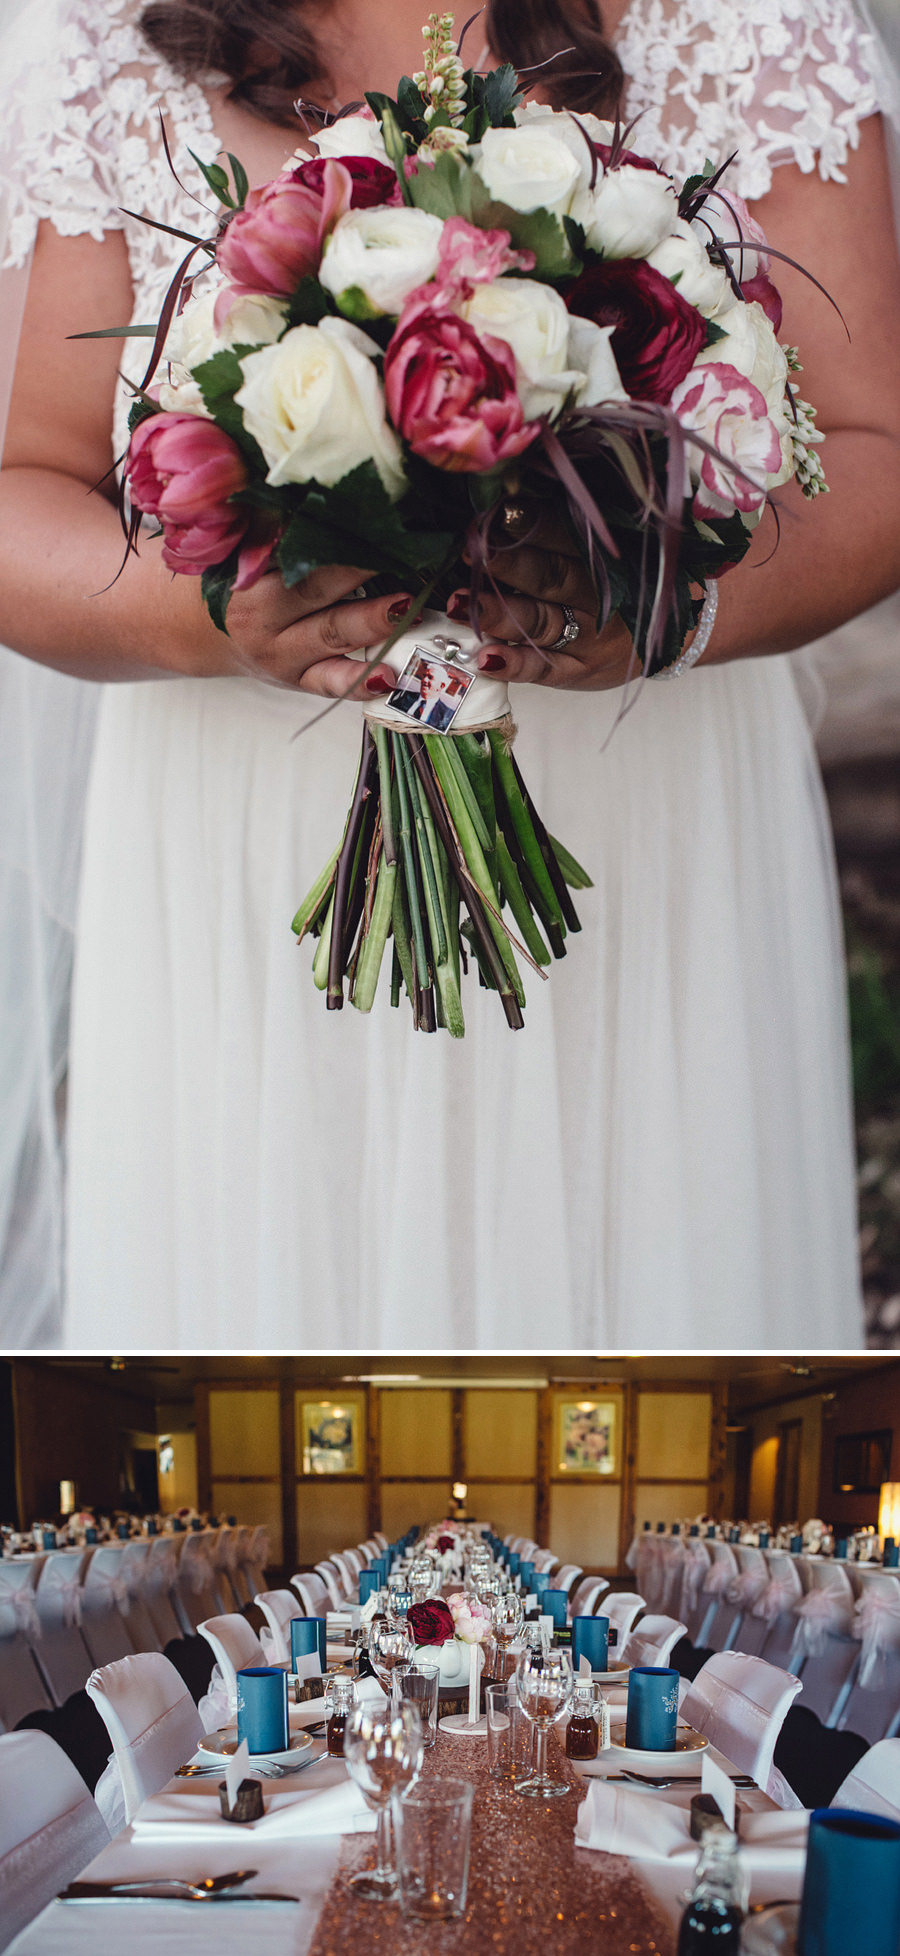 Eat Your Greens Wedding Photographers | Reception details